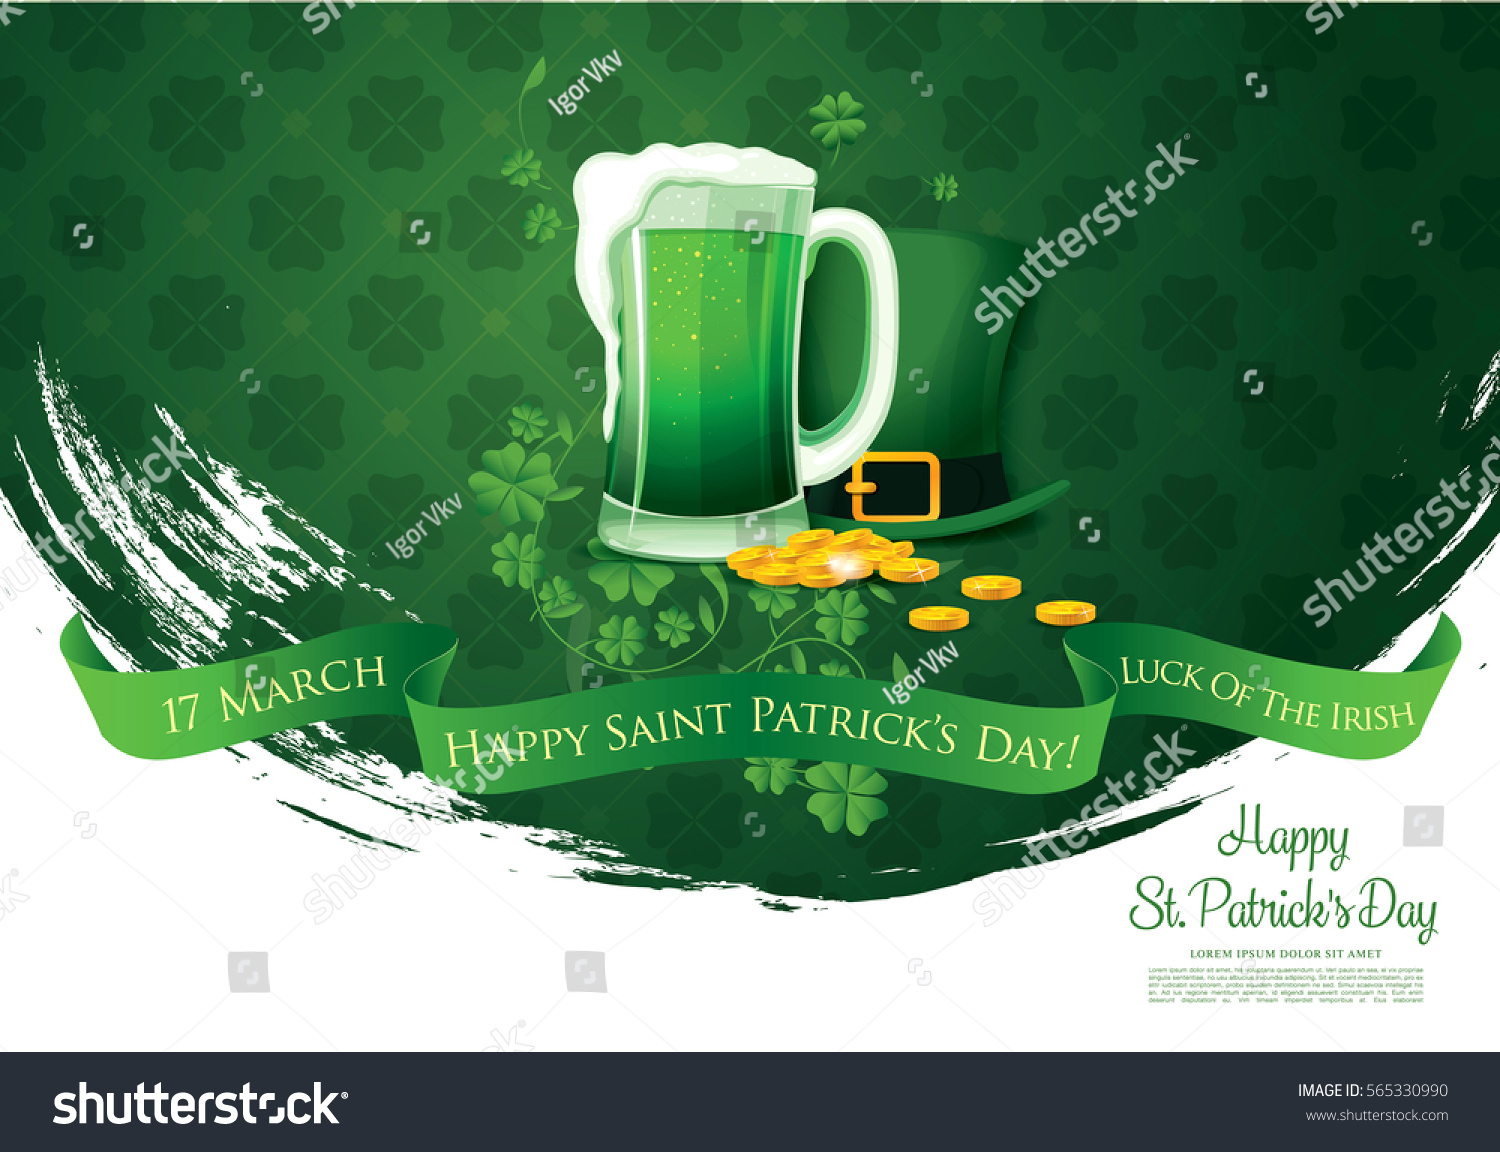 saint patrick s day Saint patrick's day celebrations include many traditions that are known to be relatively recent historically, but have endured through time because of.